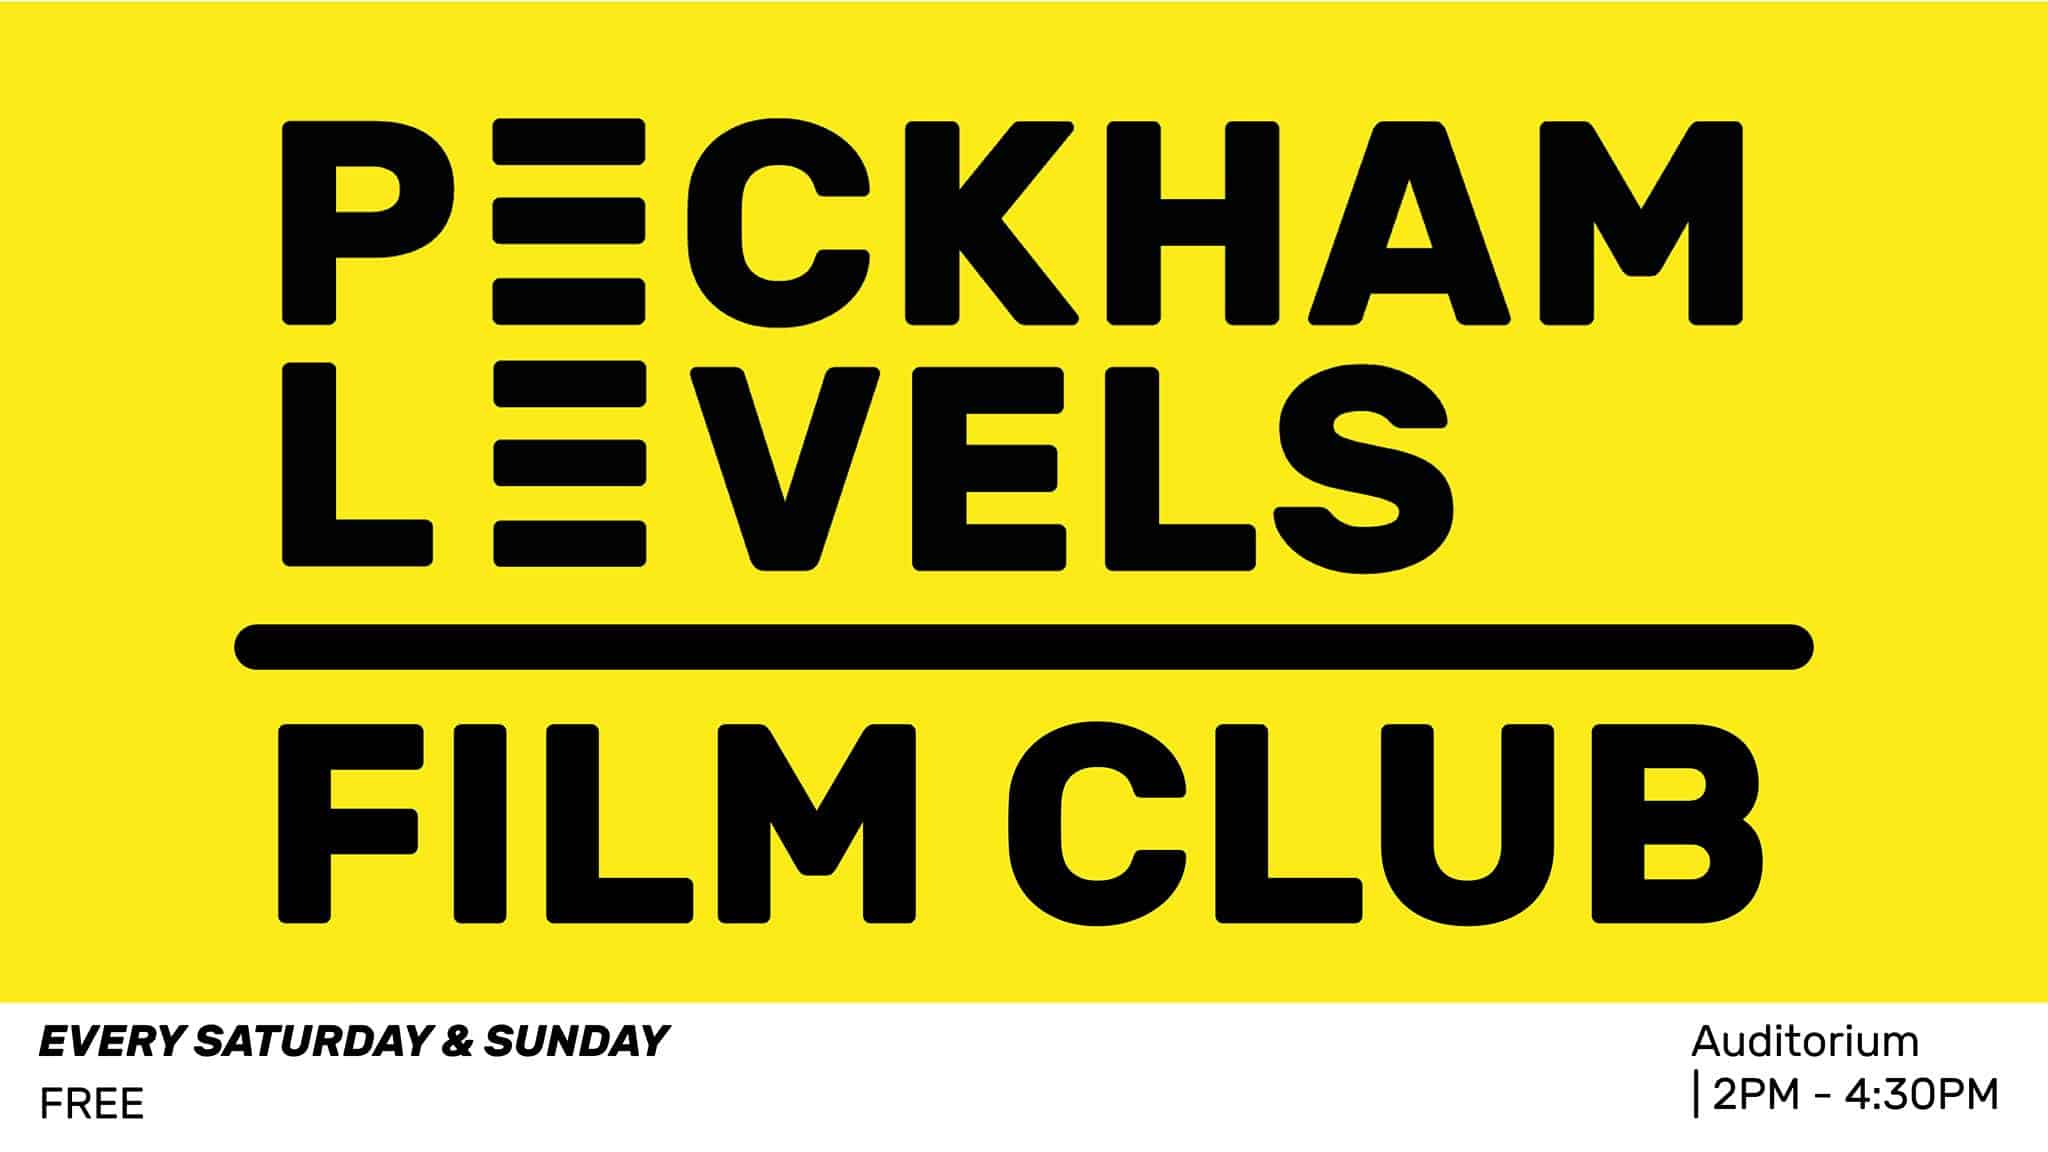 Dog-friendly Peckham Levels Film Club